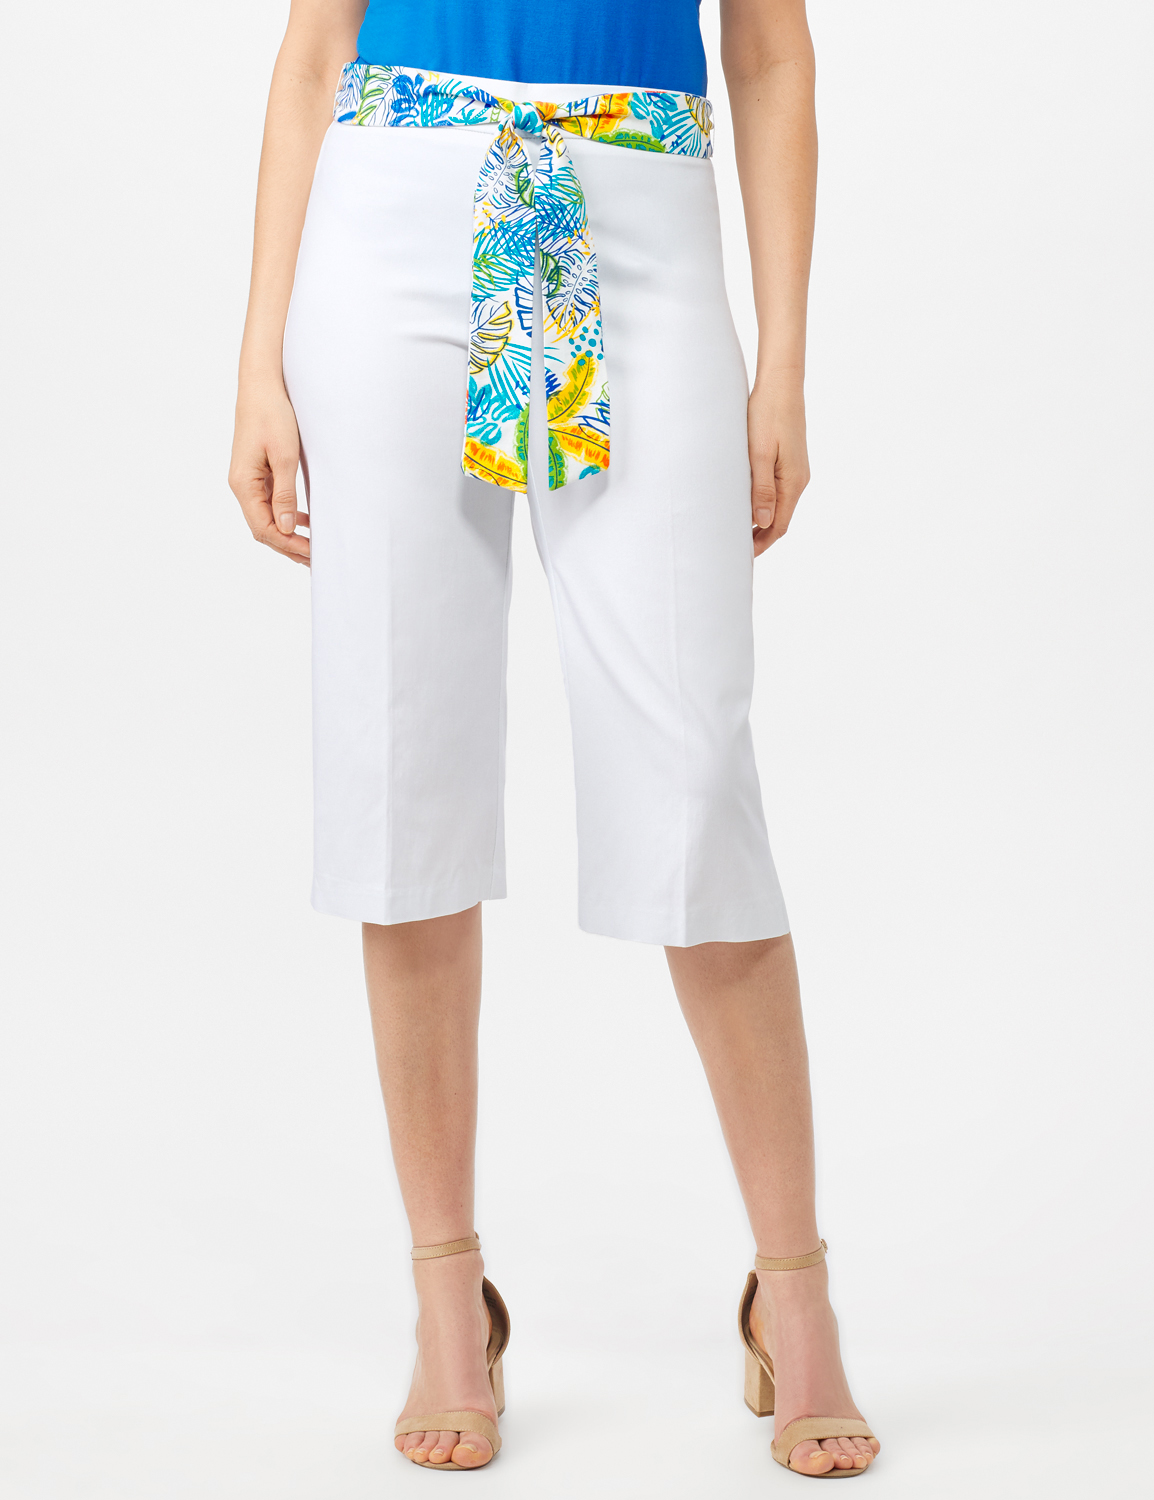 Pull On Crop Pants With Printed Tie Sash -White - Front